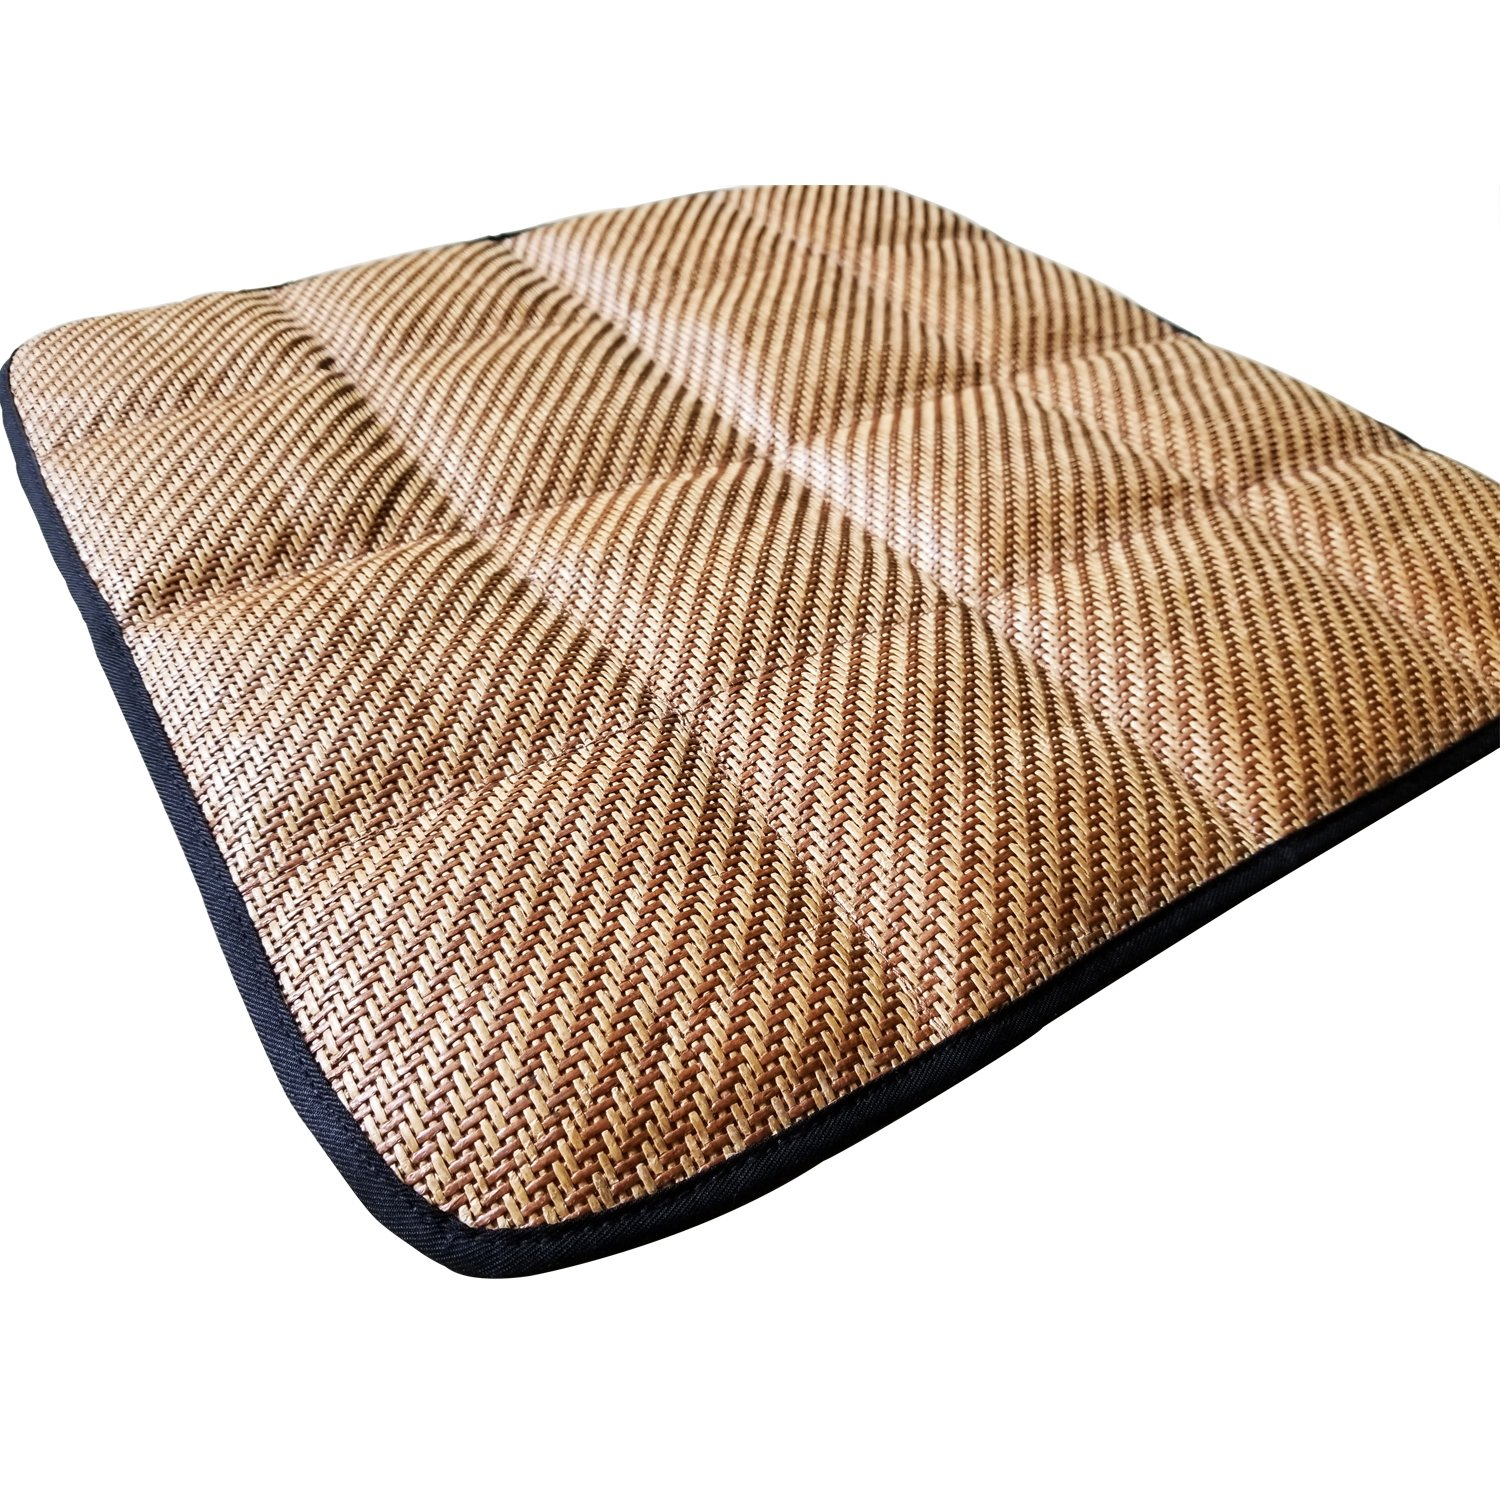 DGQ Summer Cool Bamboo Charcoal Breathable Brown Knitted Straw Seat Cushion Straw Cover Chair Pad Mat Deodorizer - Home Office Car Chair Cushion Pad